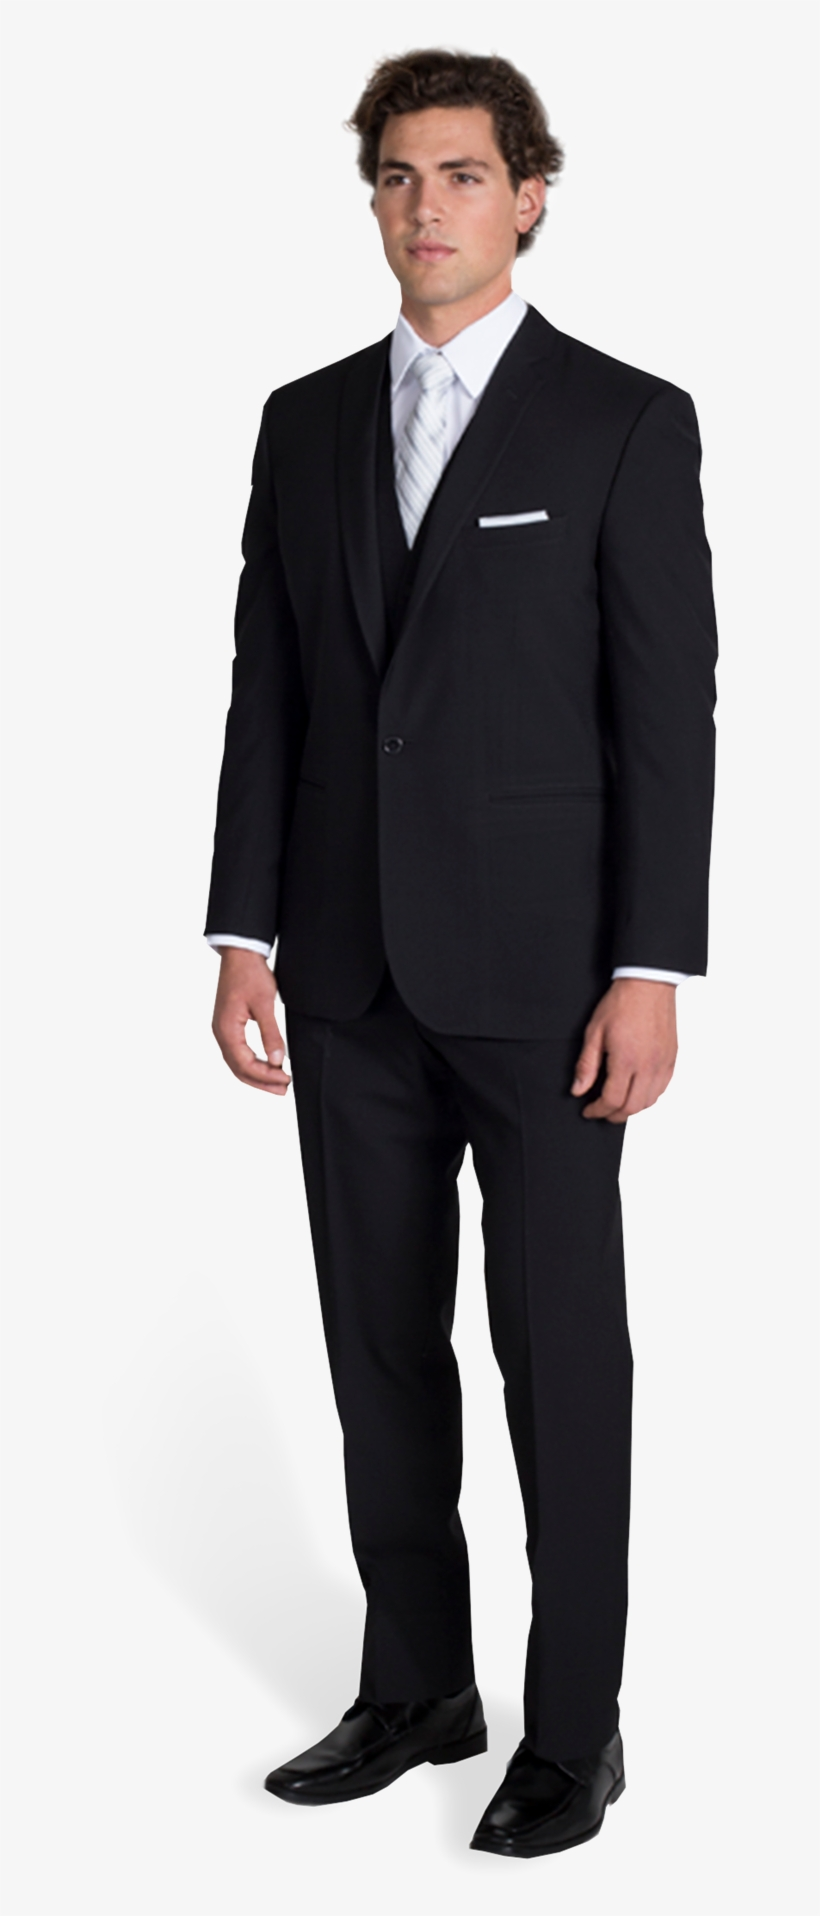 559ab61f2fda Black Notch Lapel Suit With Silver Tie - Stacy Adams Black Suits ...